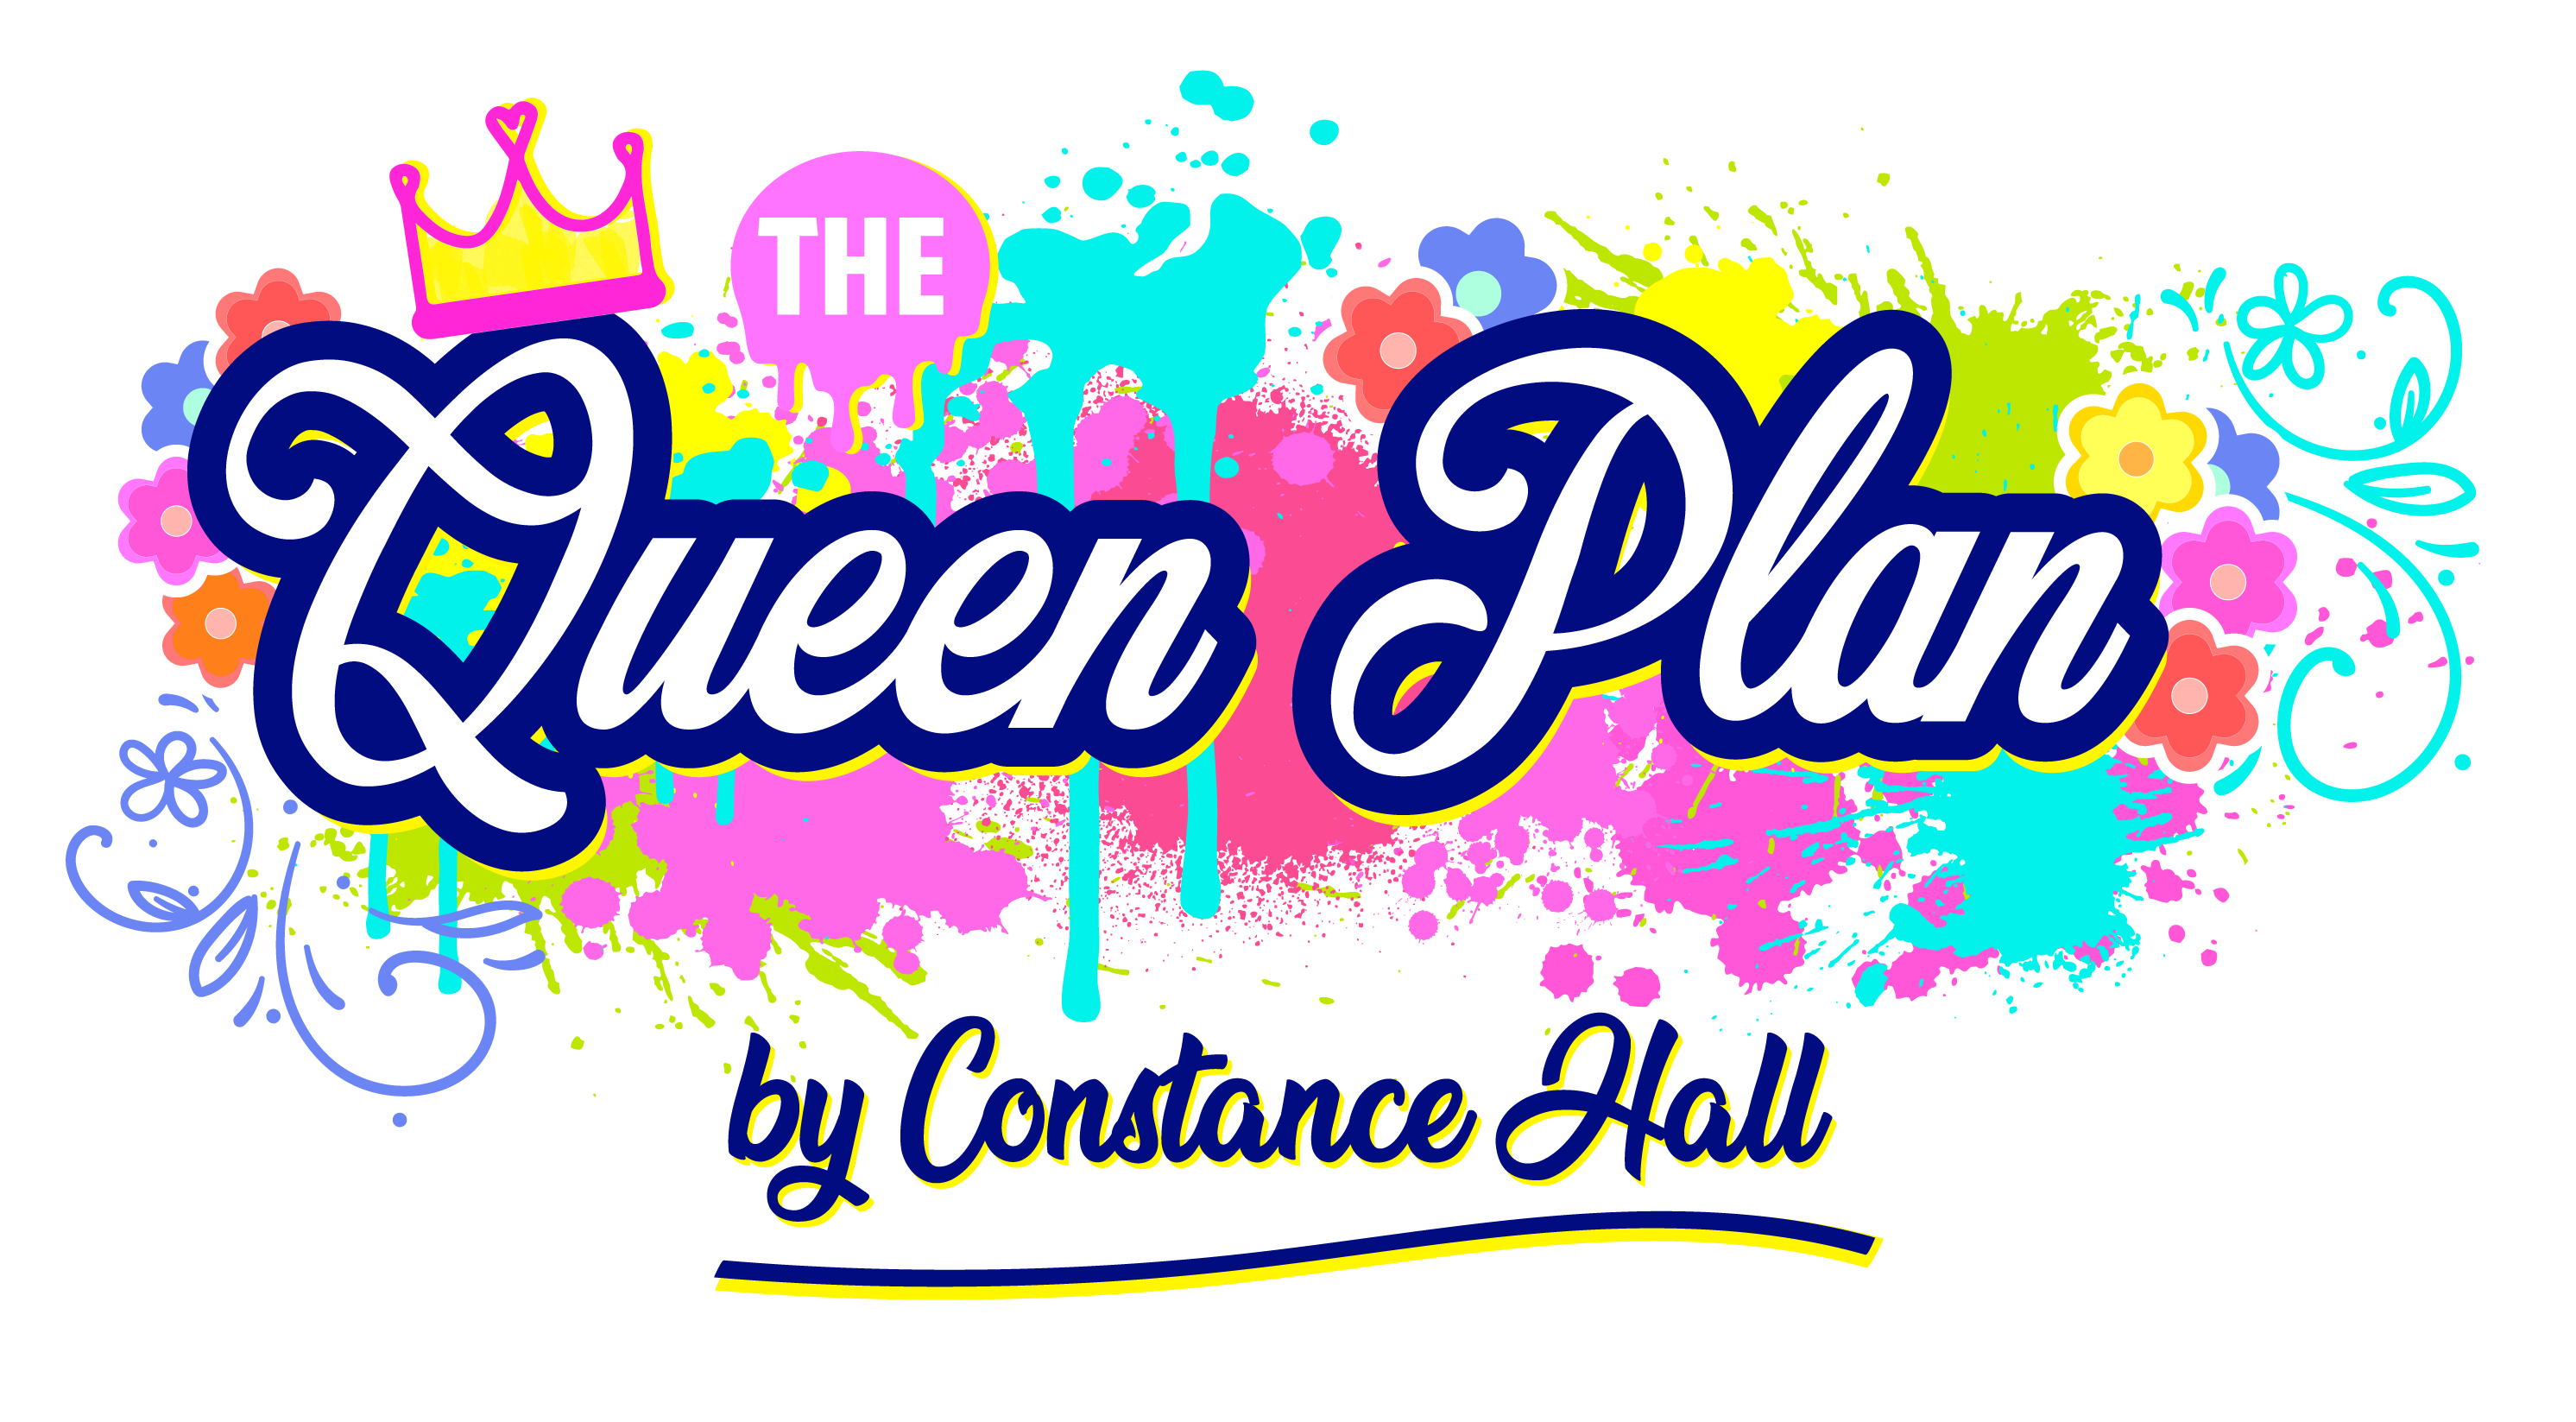 The Queen Plan by Constance Hall